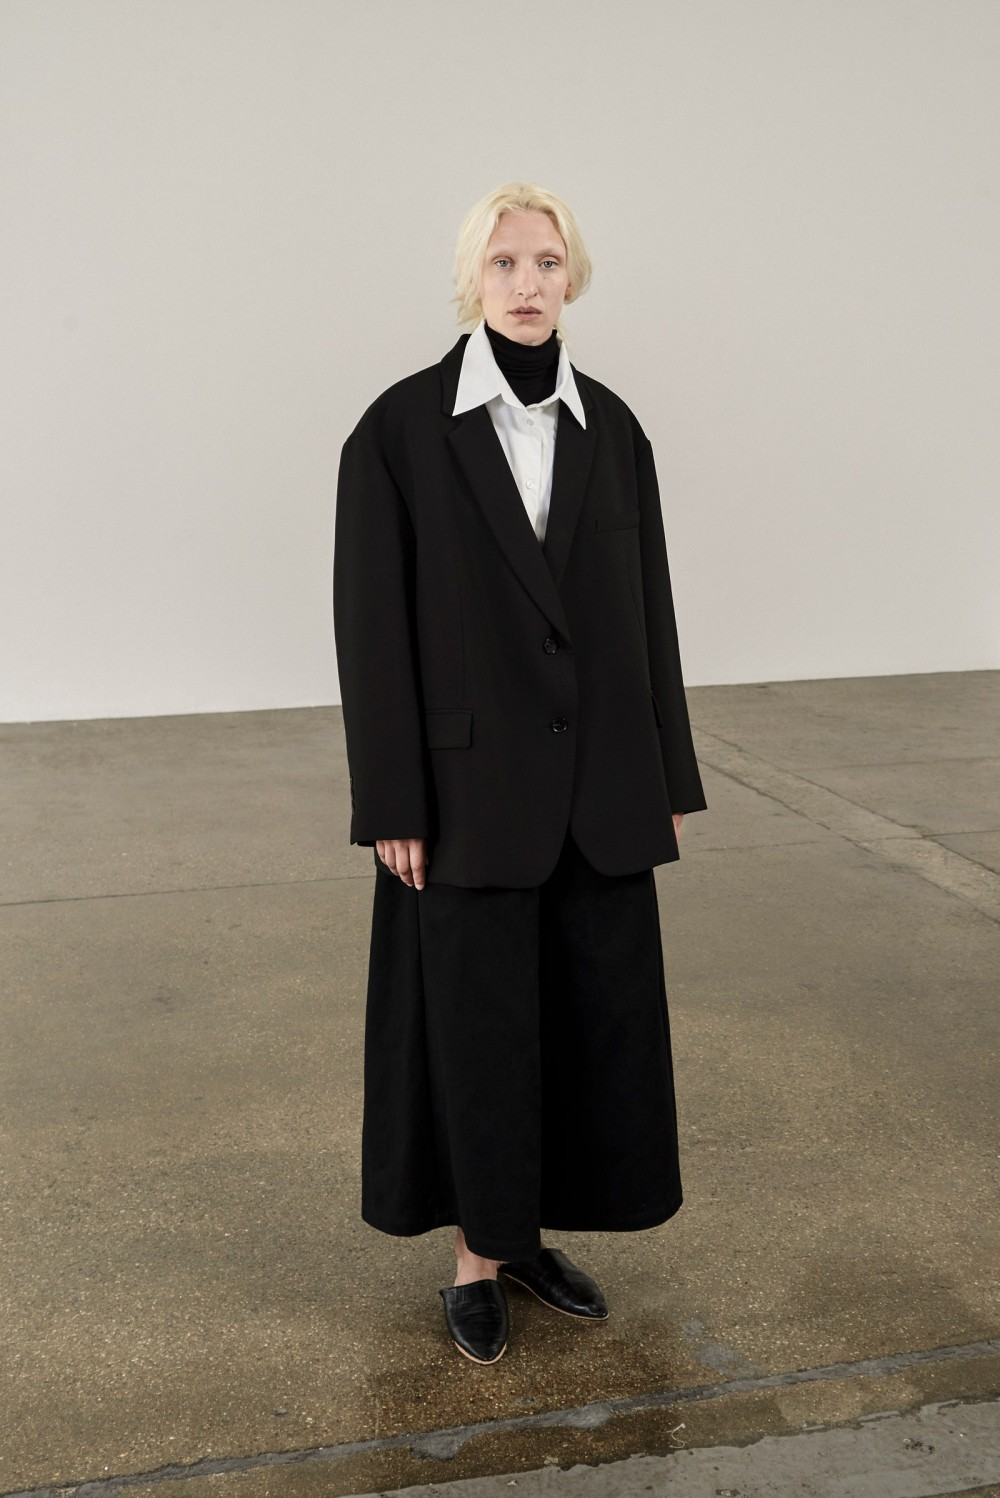 Image may contain Clothing Apparel Suit Coat Overcoat Tuxedo Dress Human Person Female Footwear and Shoe